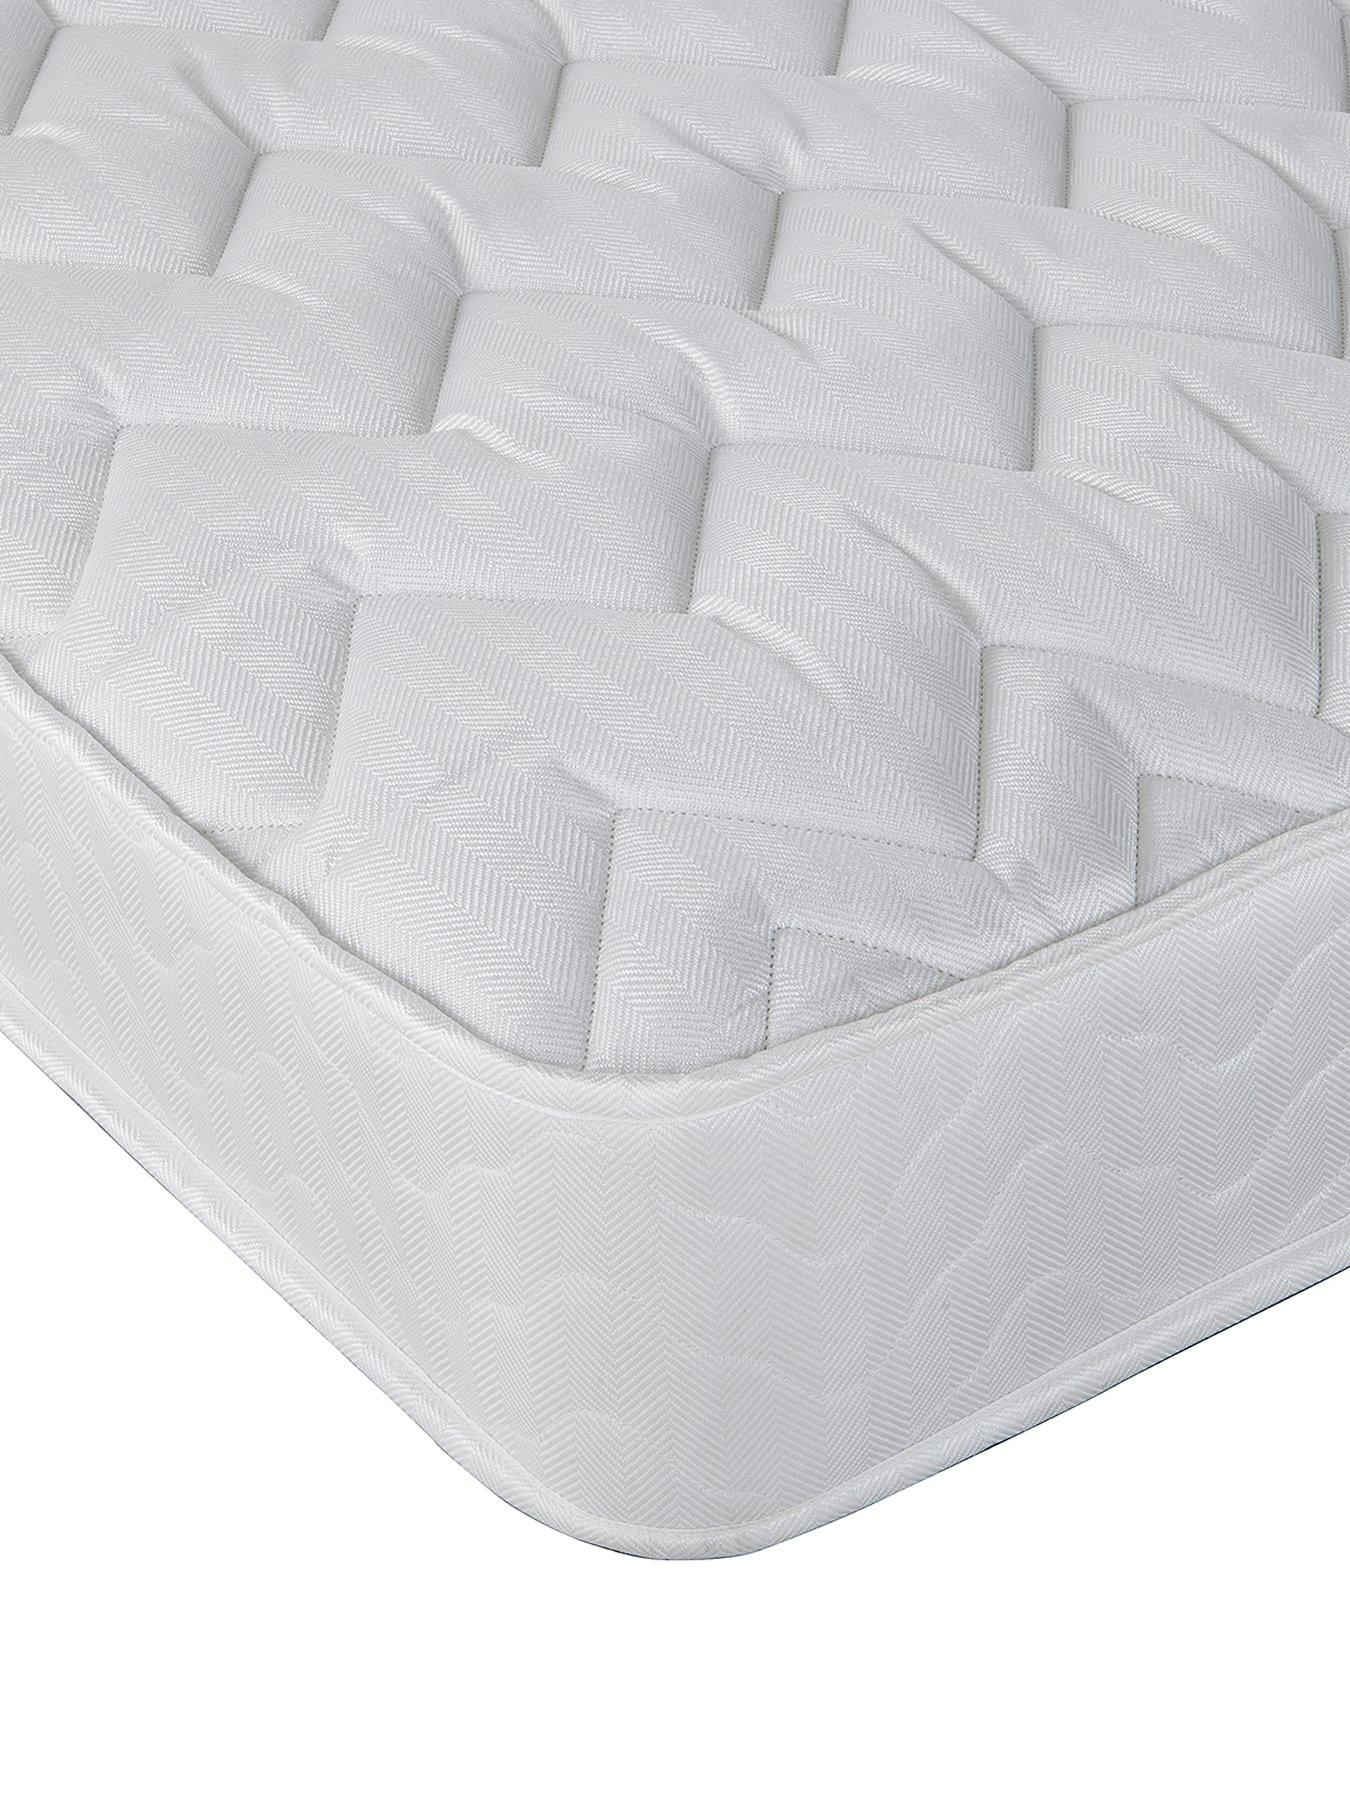 Airsprung Caitlin 5 Zone Luxury Mattress